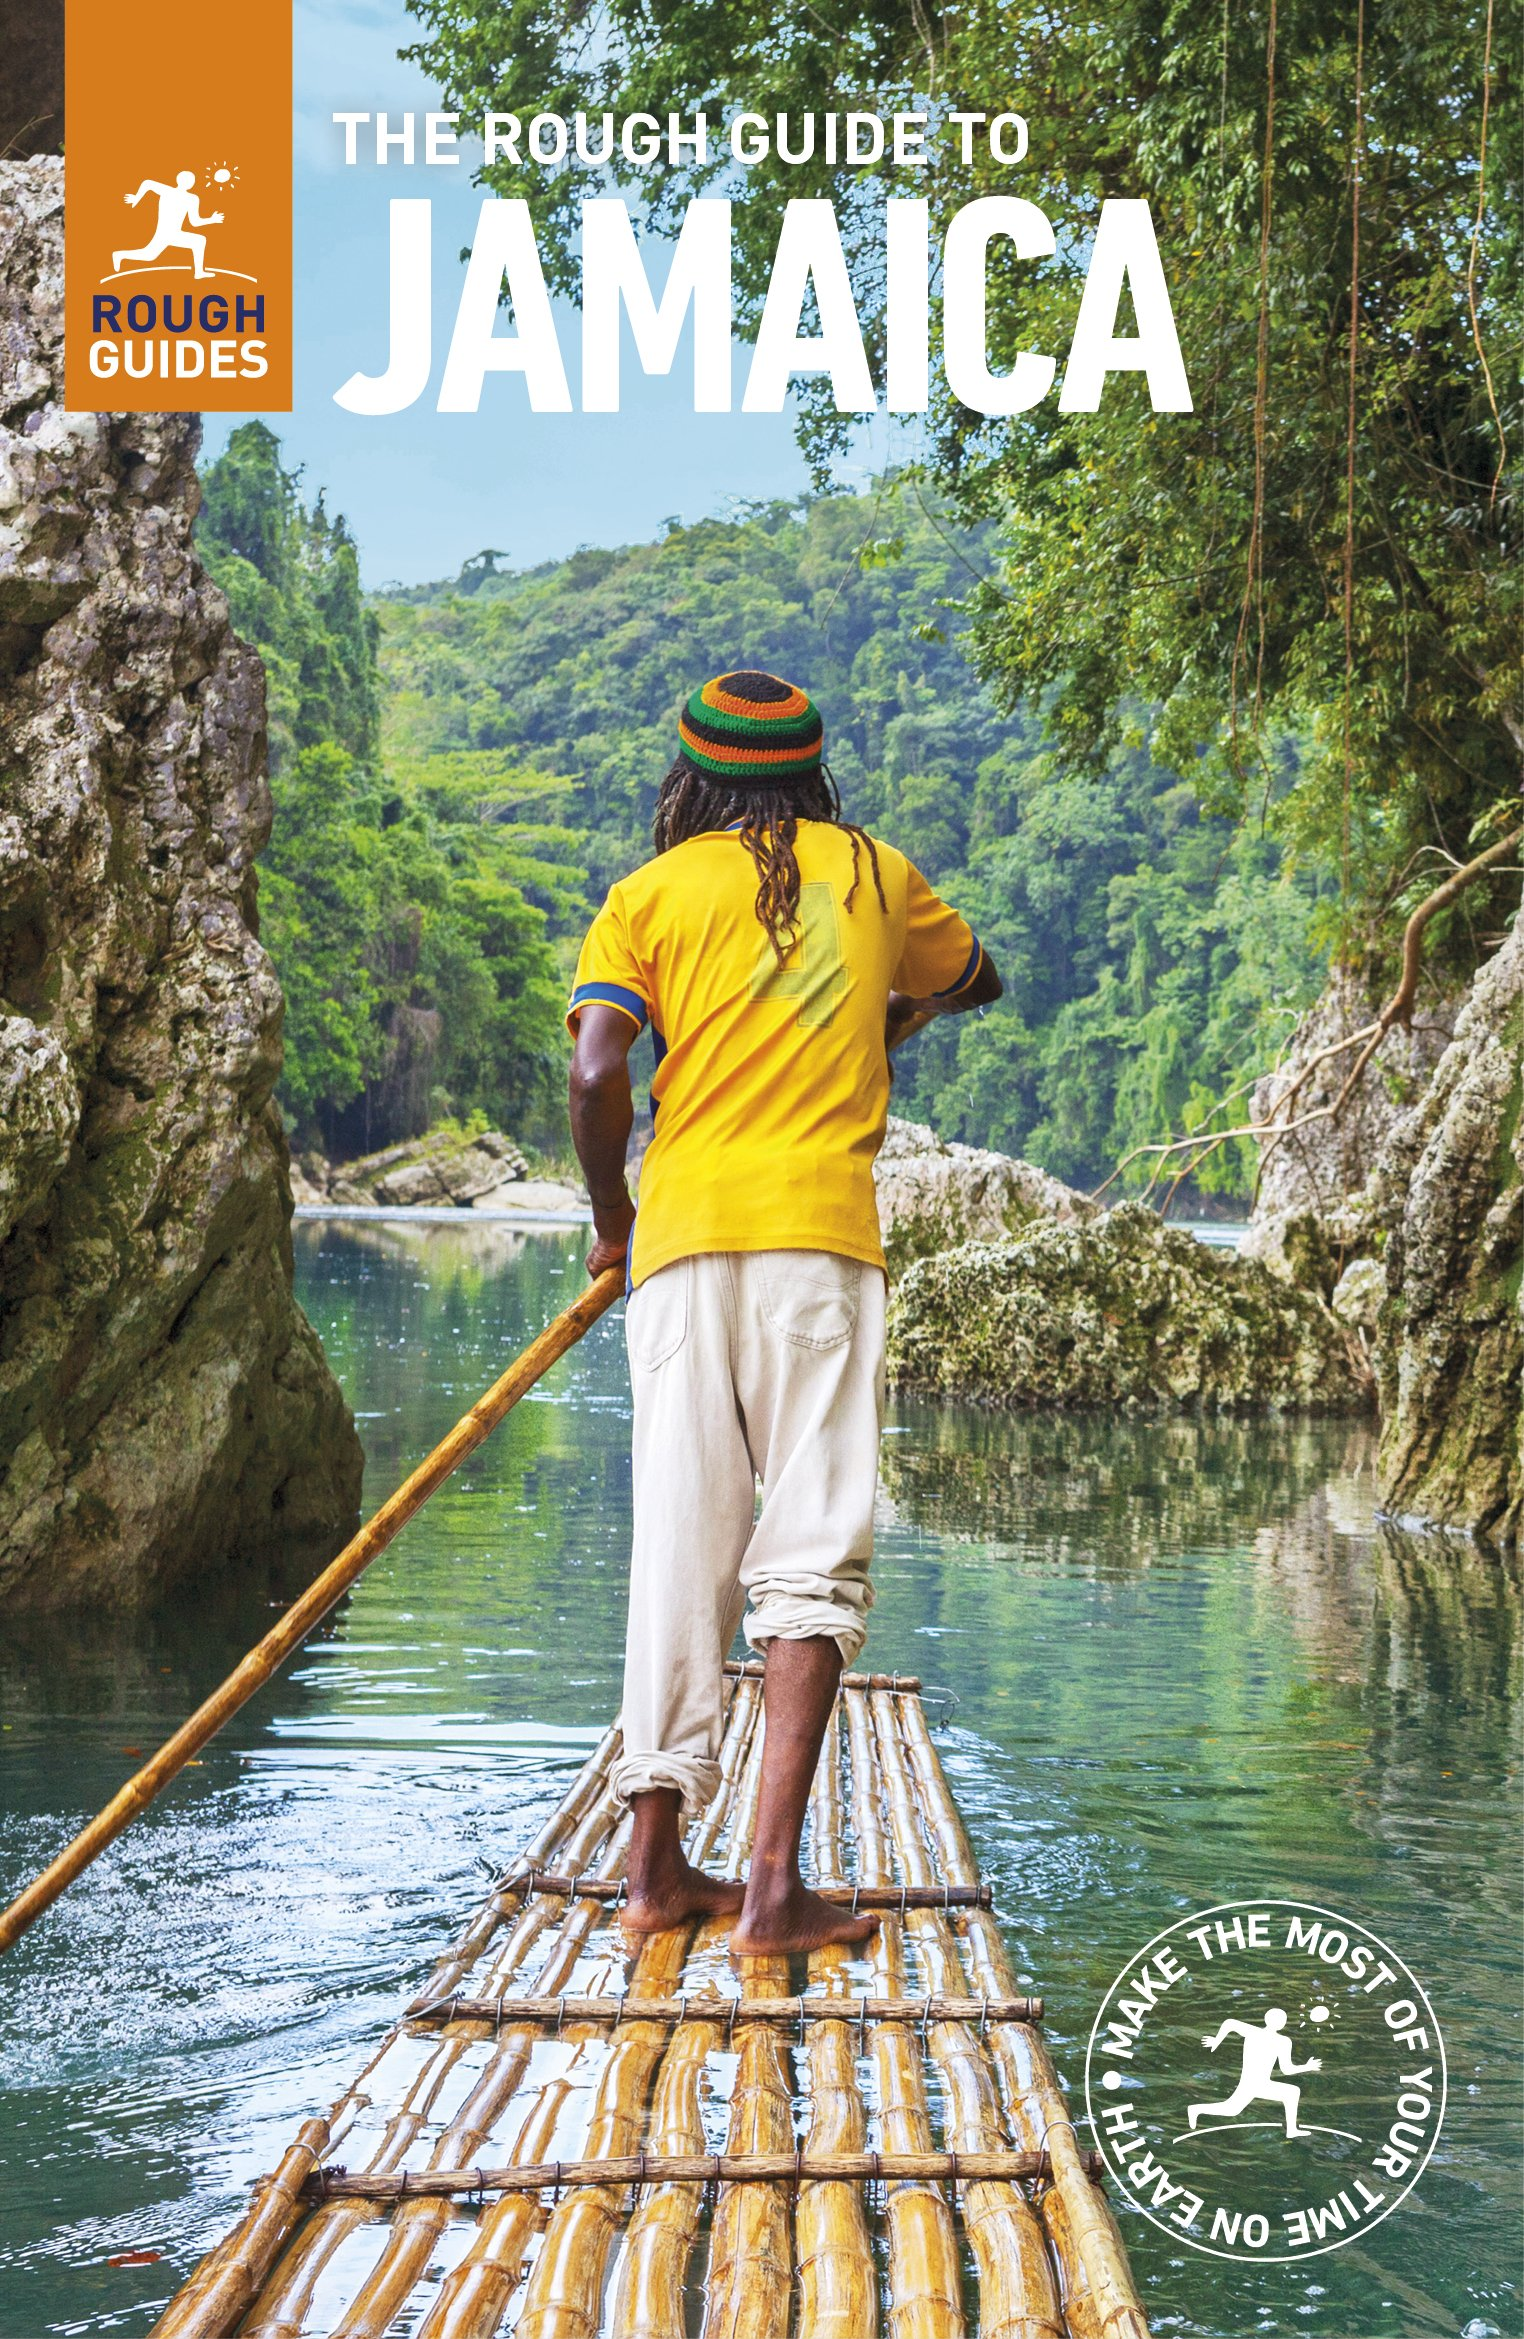 The Rough Guide to Jamaica (Rough Guides) Paperback – August 7, 2018 0241308836 Caribbean & West Indies Guidebooks General Adult